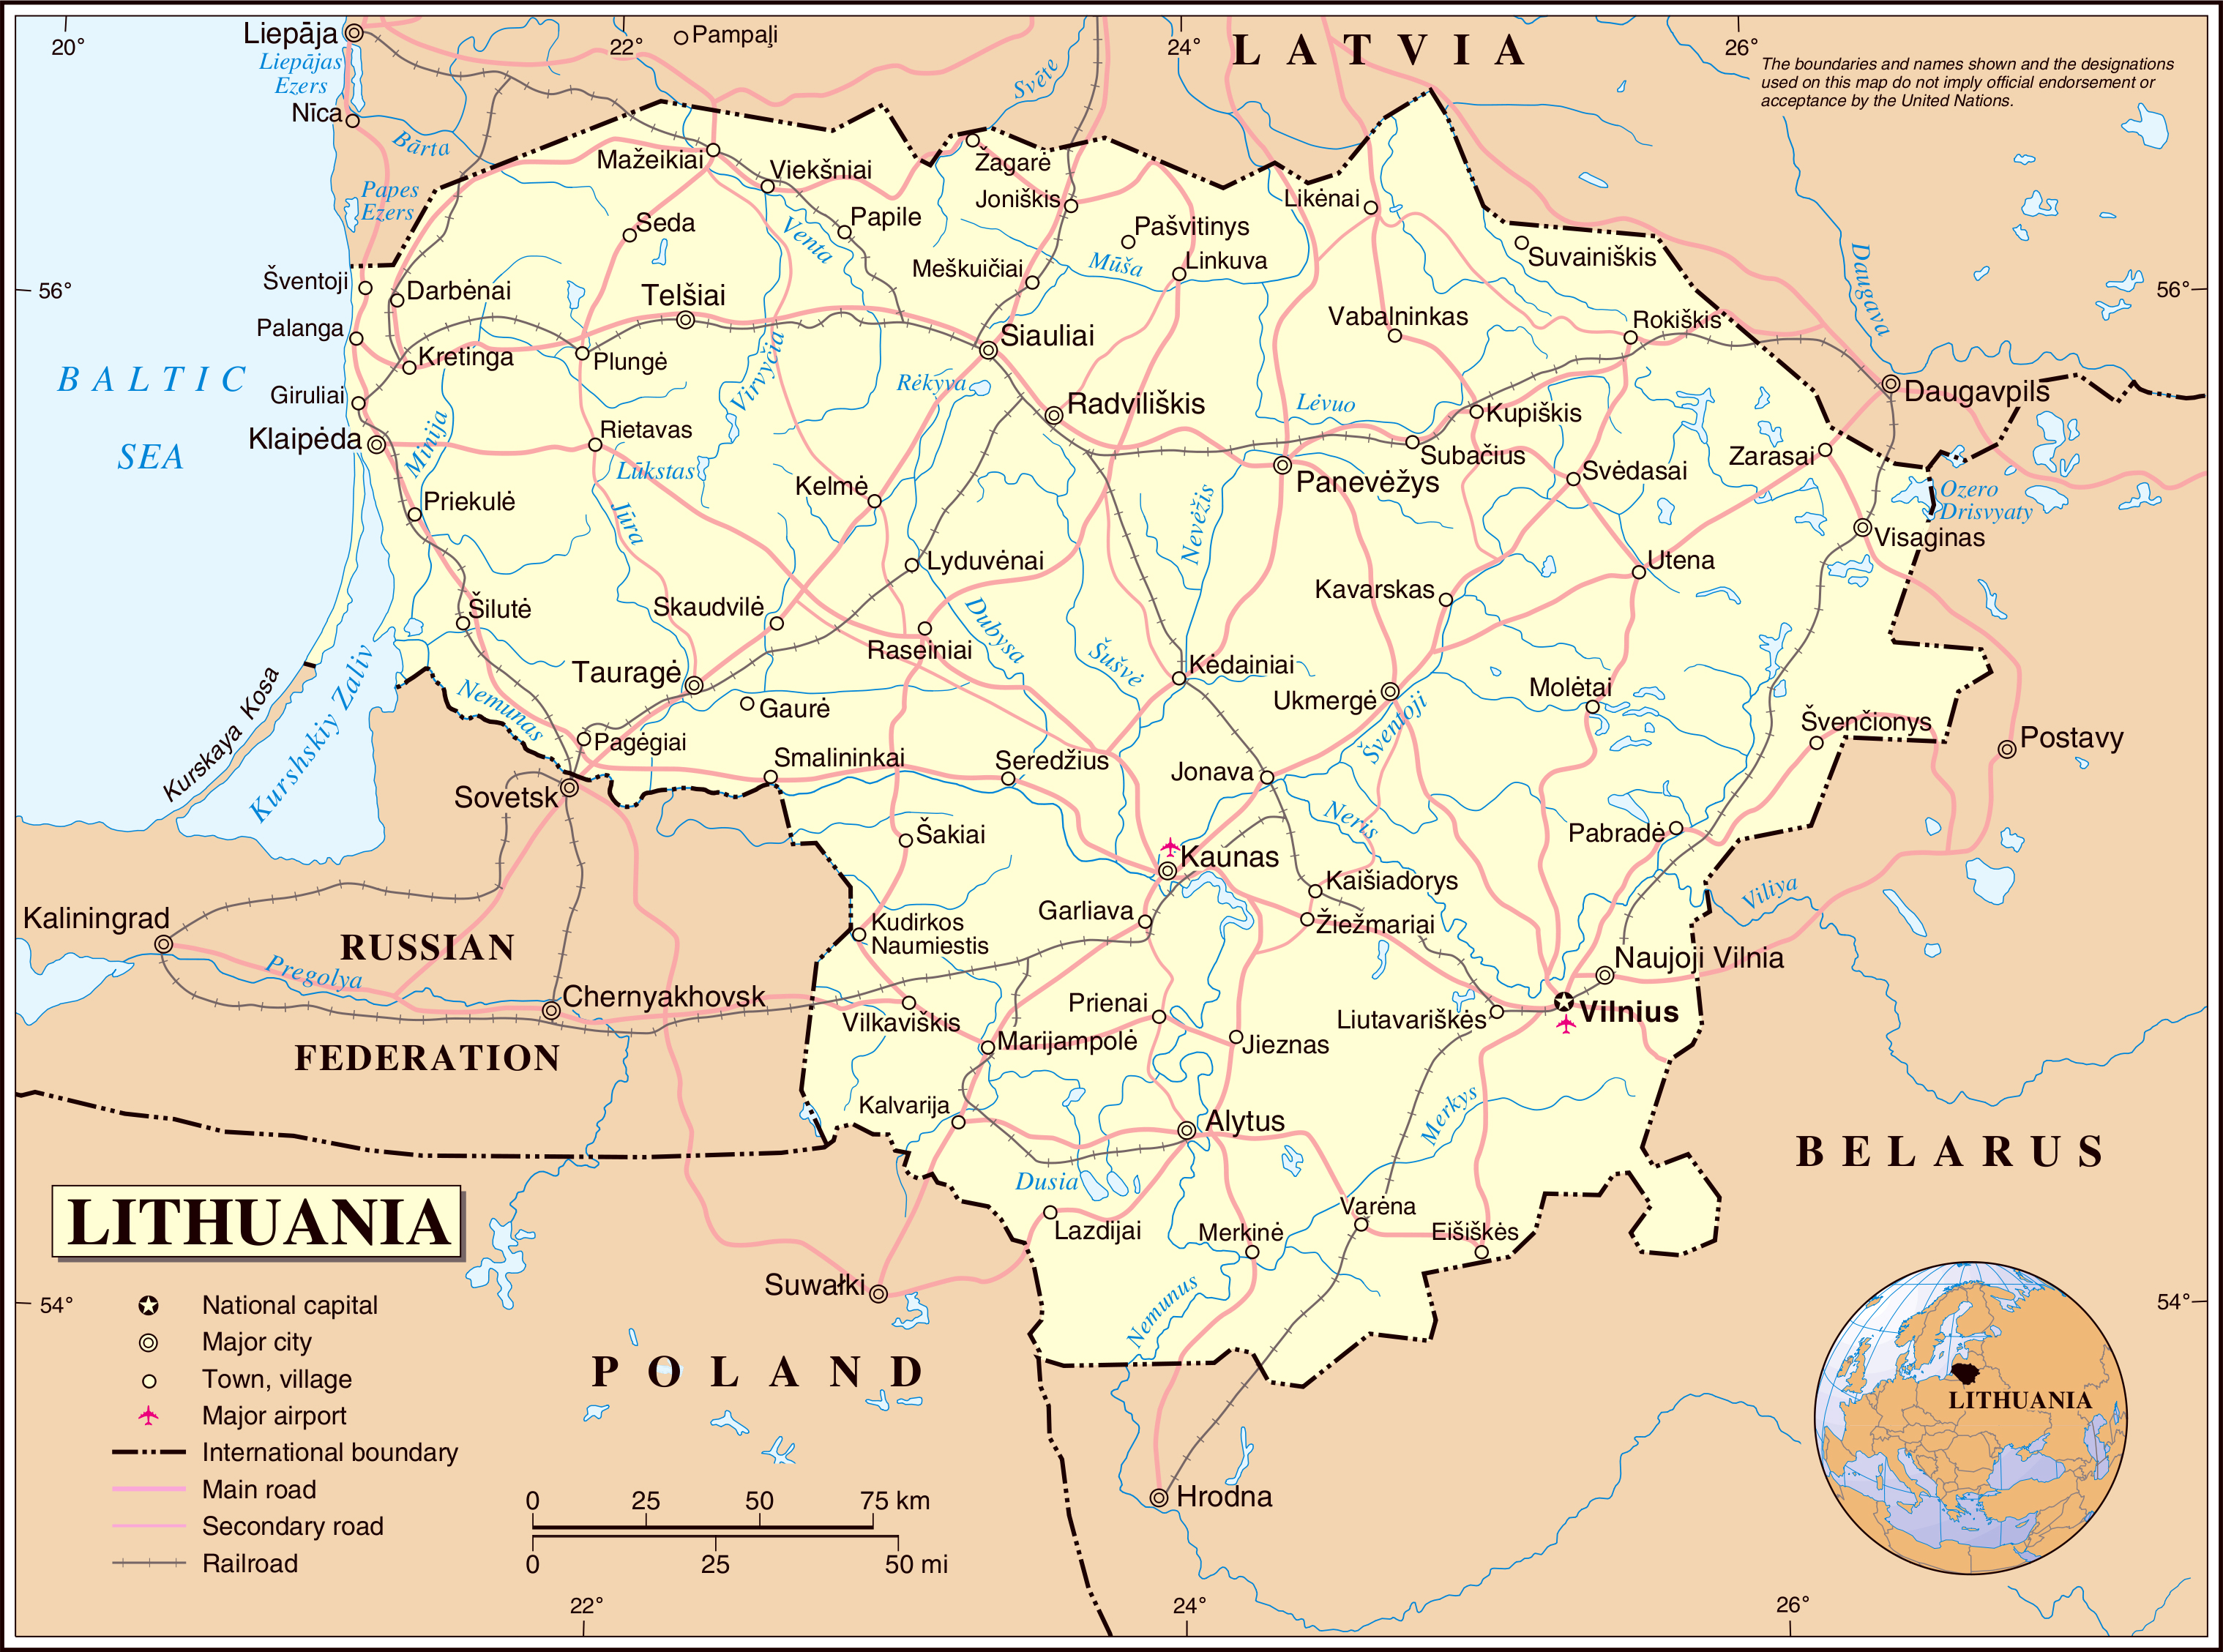 location of lithuania in world map #2, block diagram, location of lithuania in world map